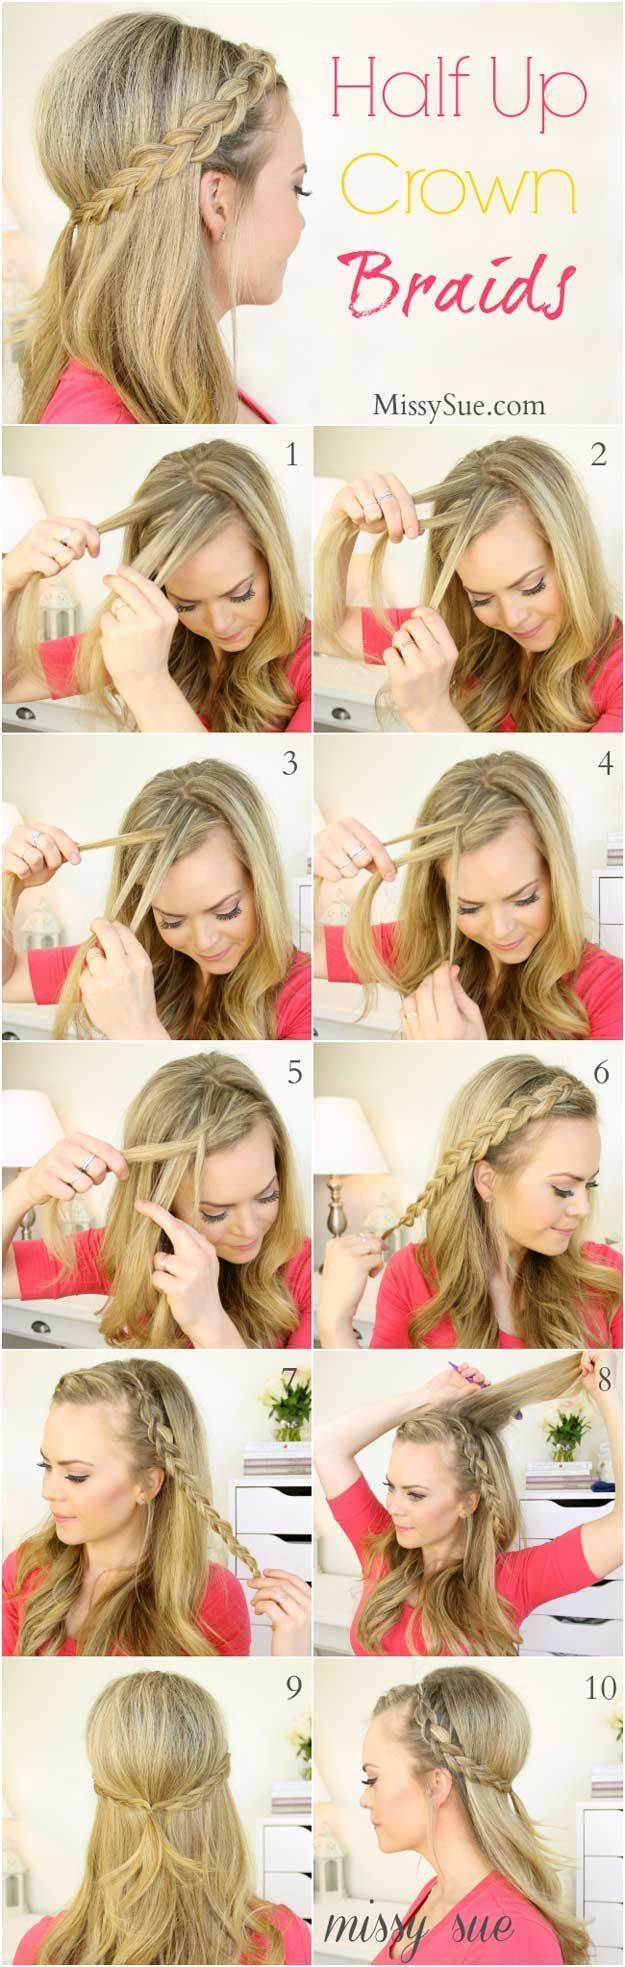 Quick and easy hairstyles for school amazing half uphalf down